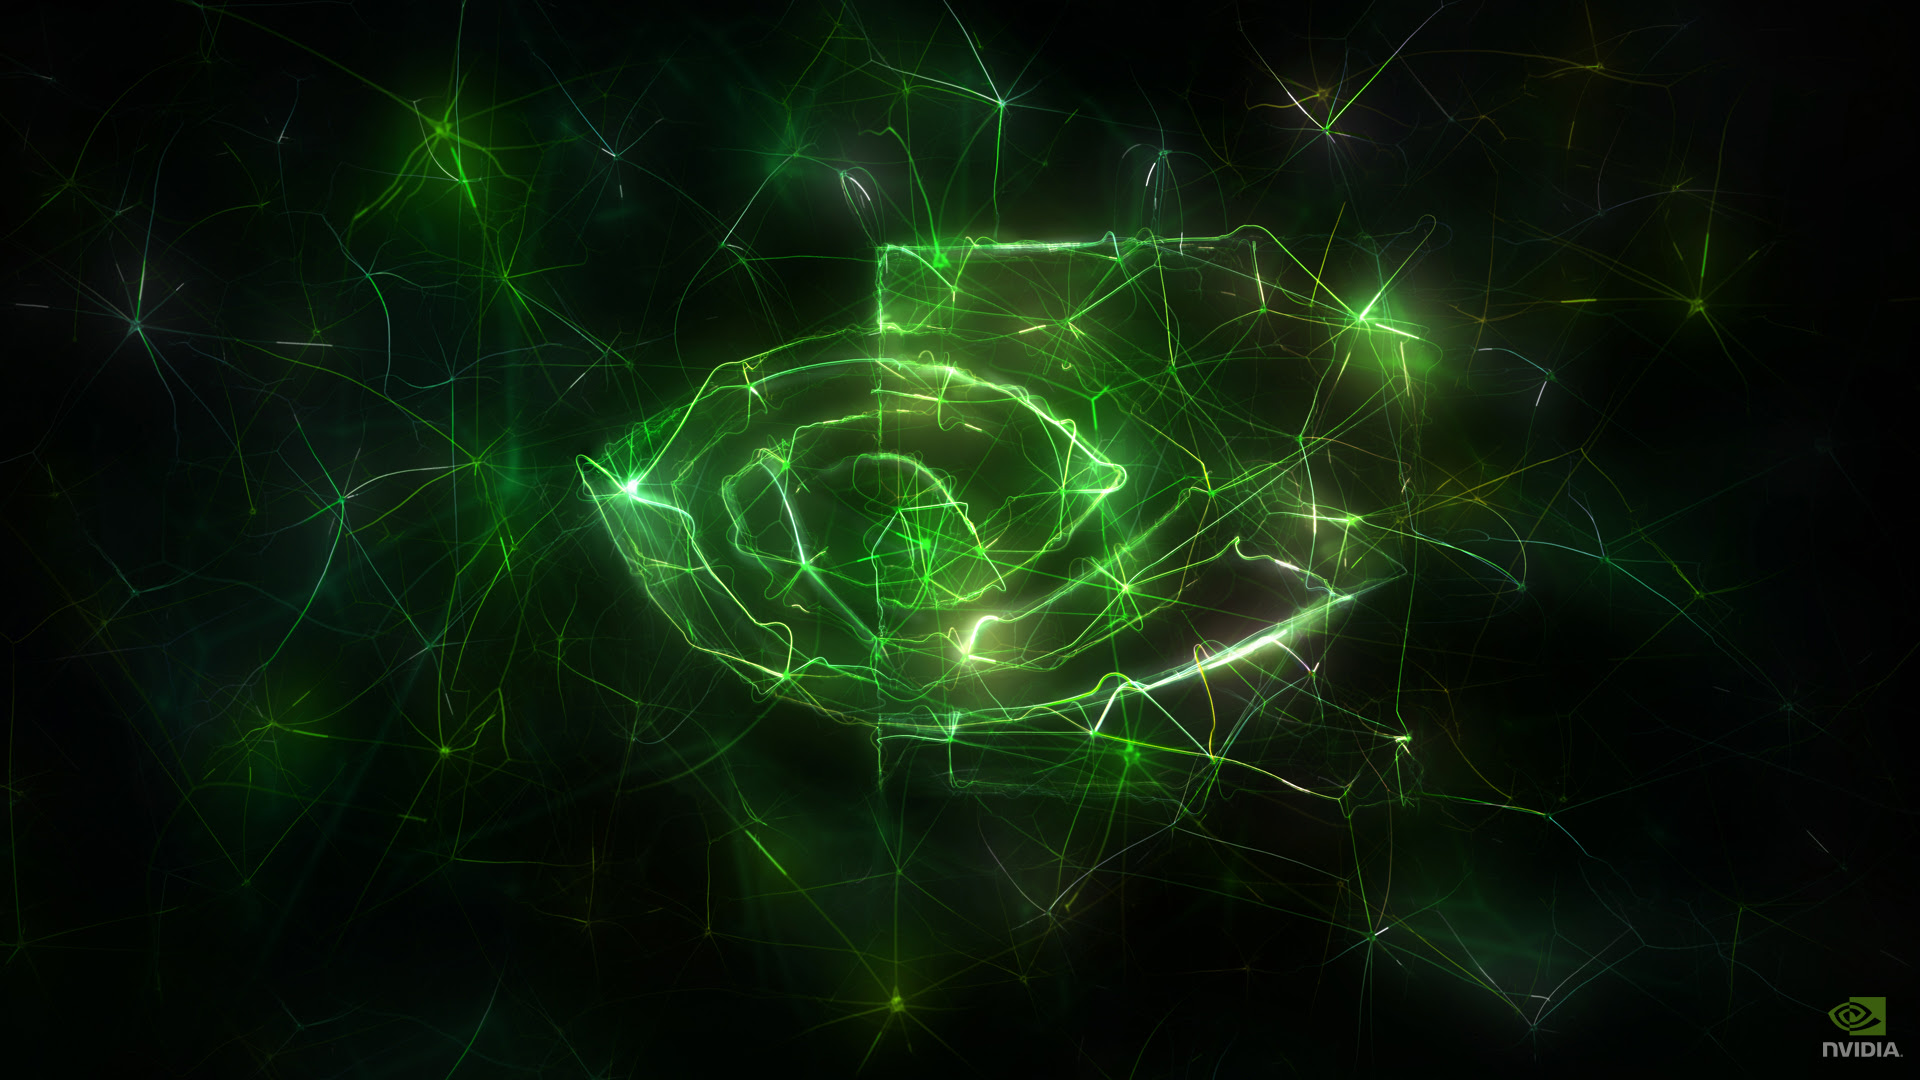 ... Wallpaper | Download Demos, Wallpapers, and Screensavers | NVIDIA Cool